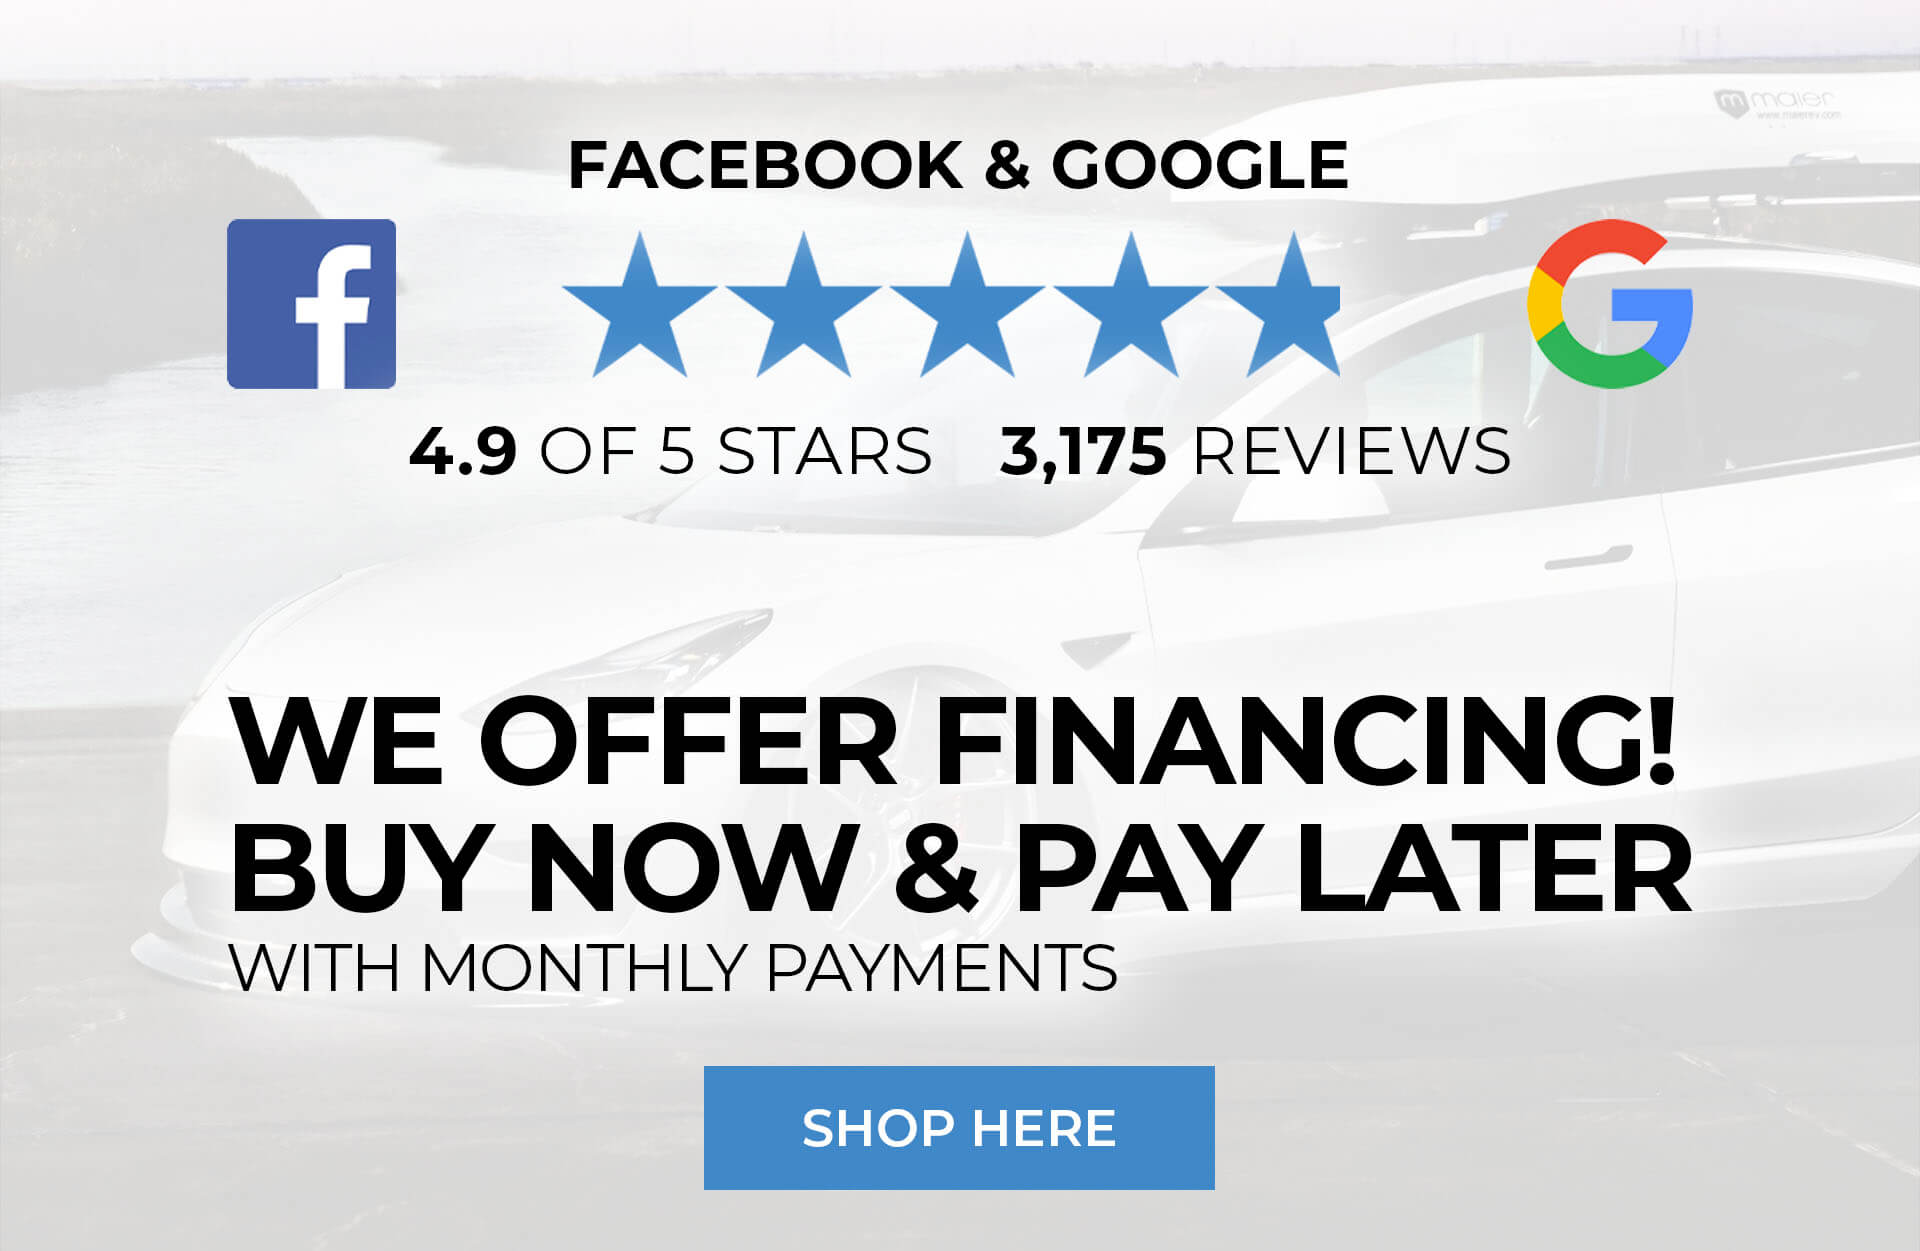 We offer financing! Buy now & pay later with monthly payments. 4.8 of 5 star reviews!